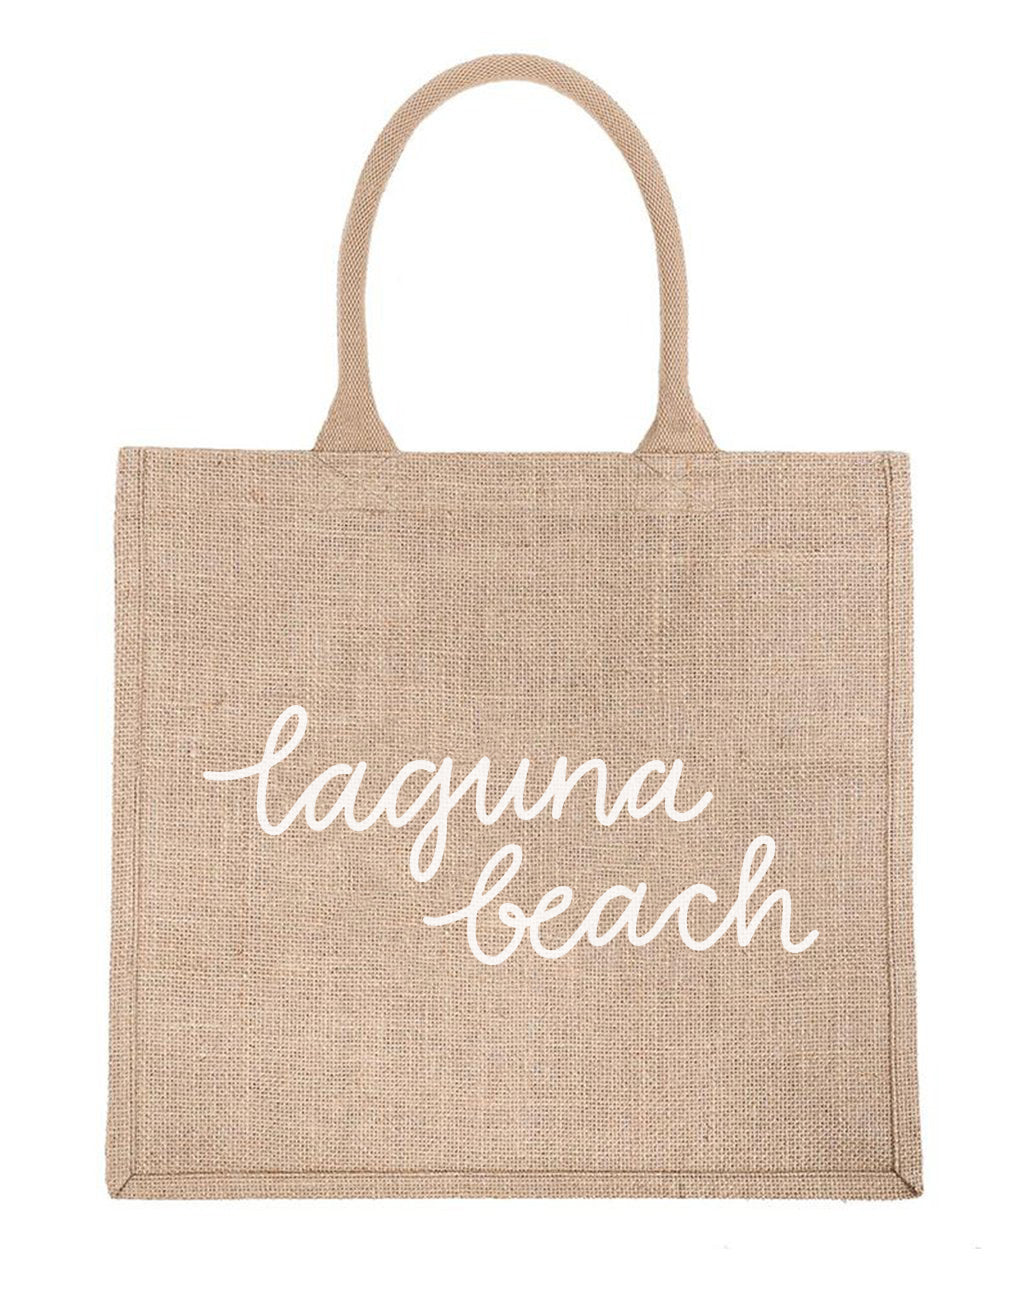 Large Laguna Beach Reusable Shopping Tote In White Font | The Little Market